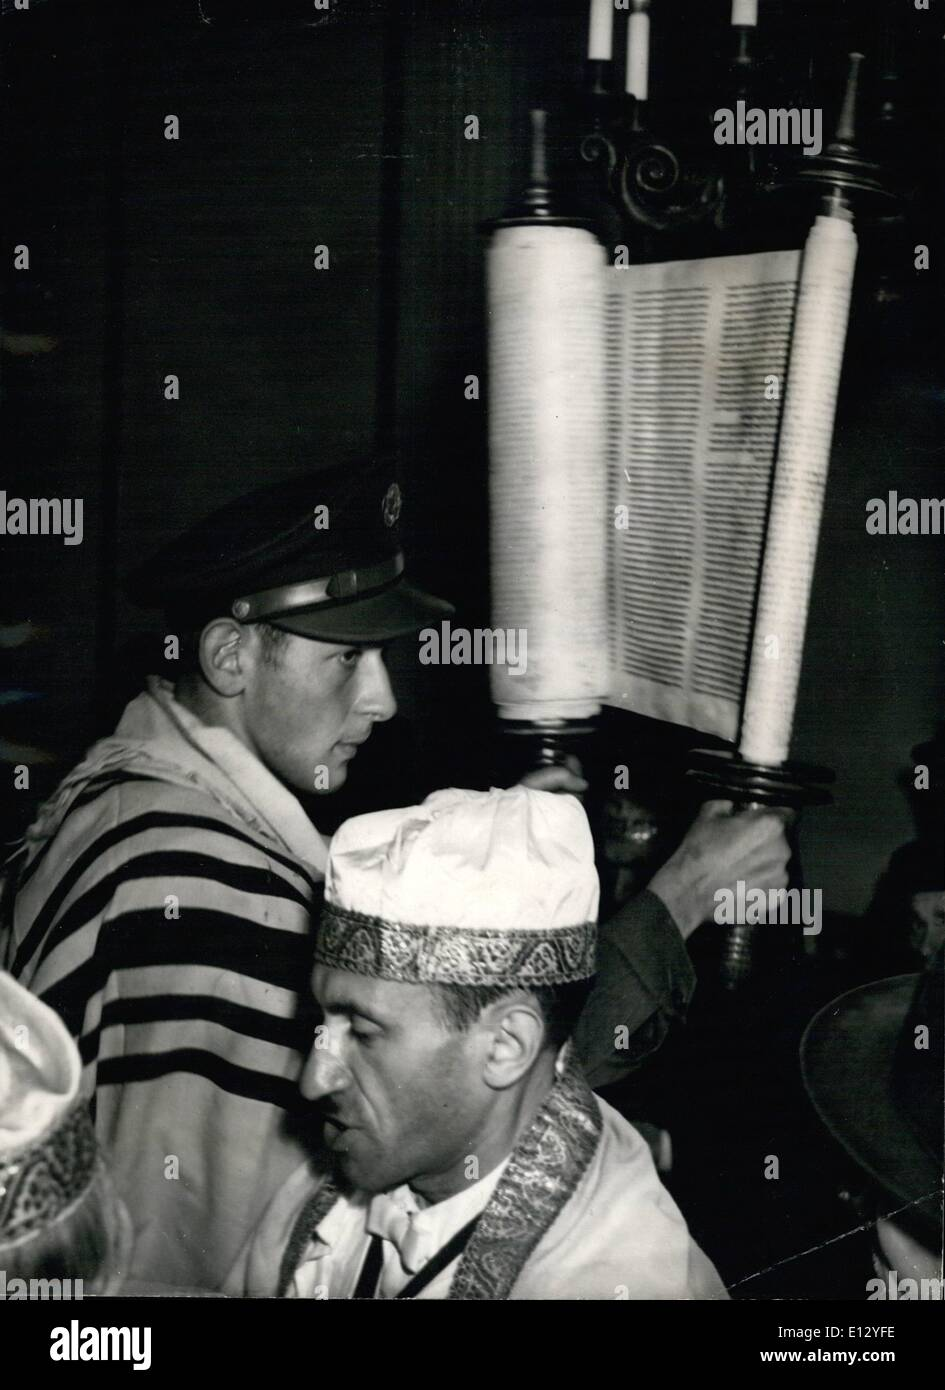 Feb. 26, 2012 - naz. for the first time the bound of shore-an or Rama horn was heard in Berlin when the m, Jewish - Stock Image